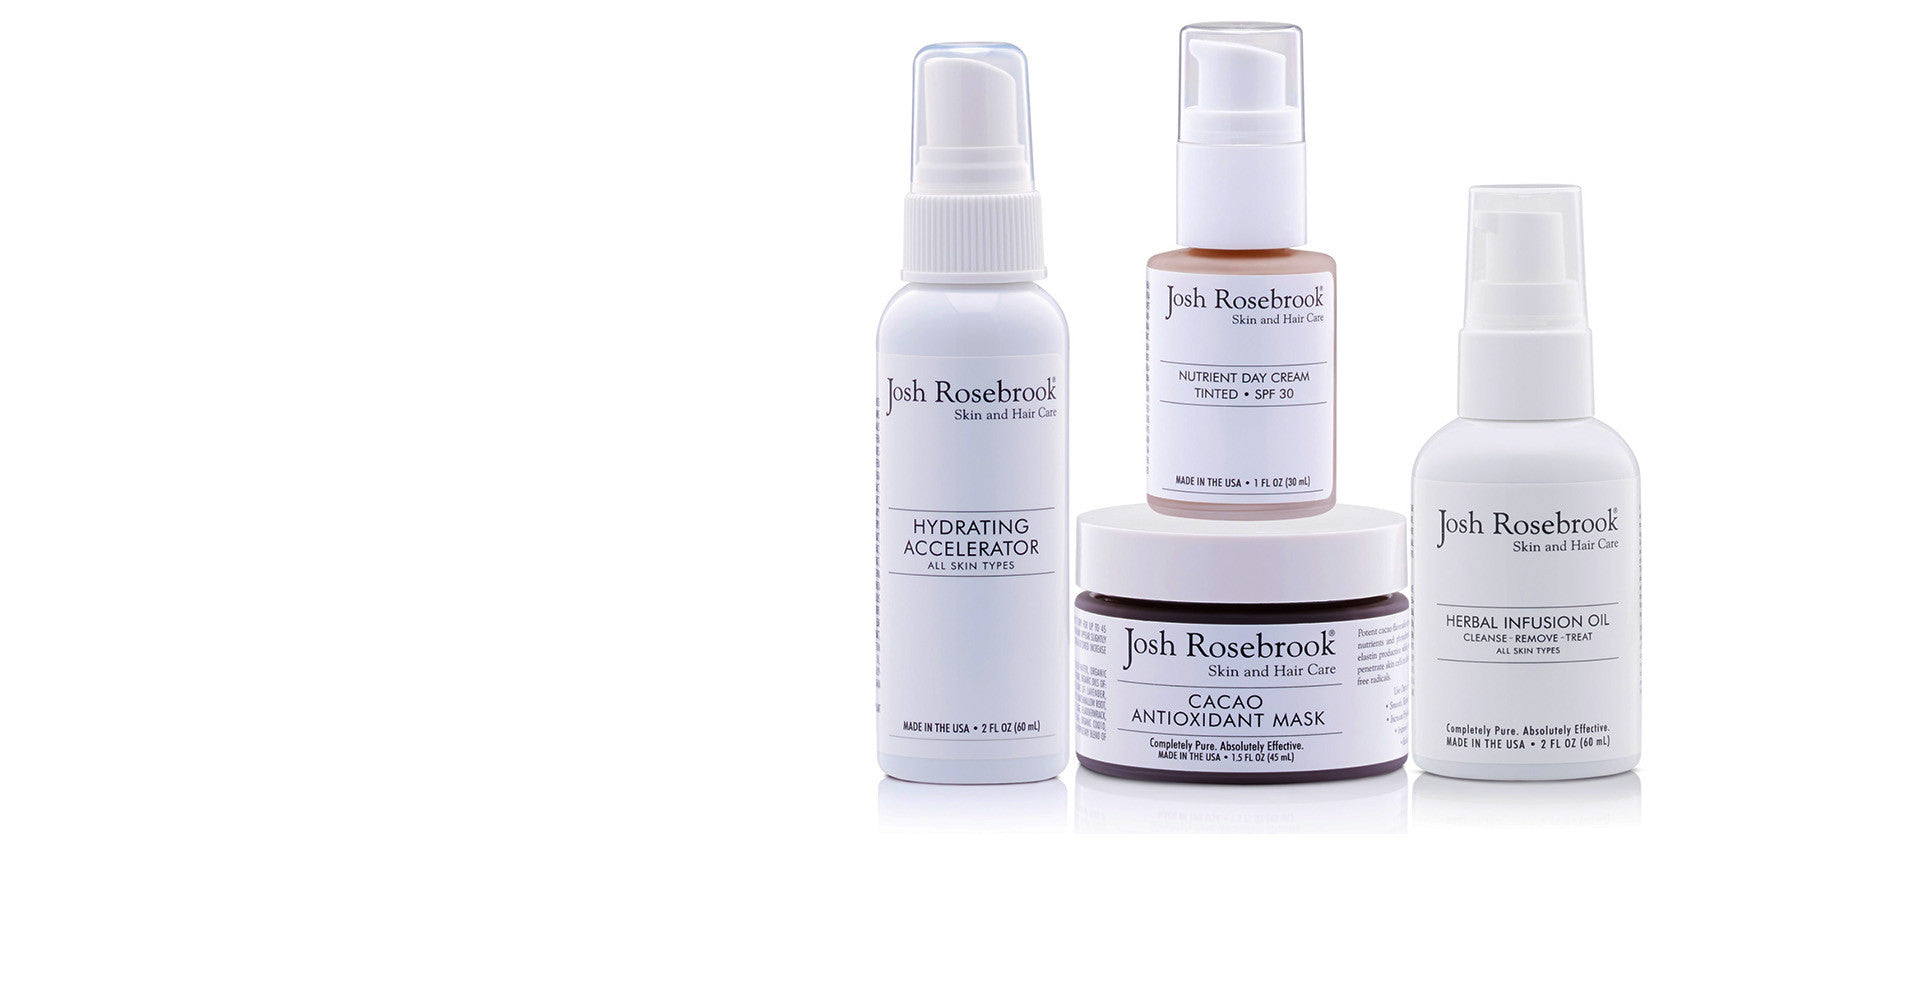 Josh Rosebrook Skin and Hair Care